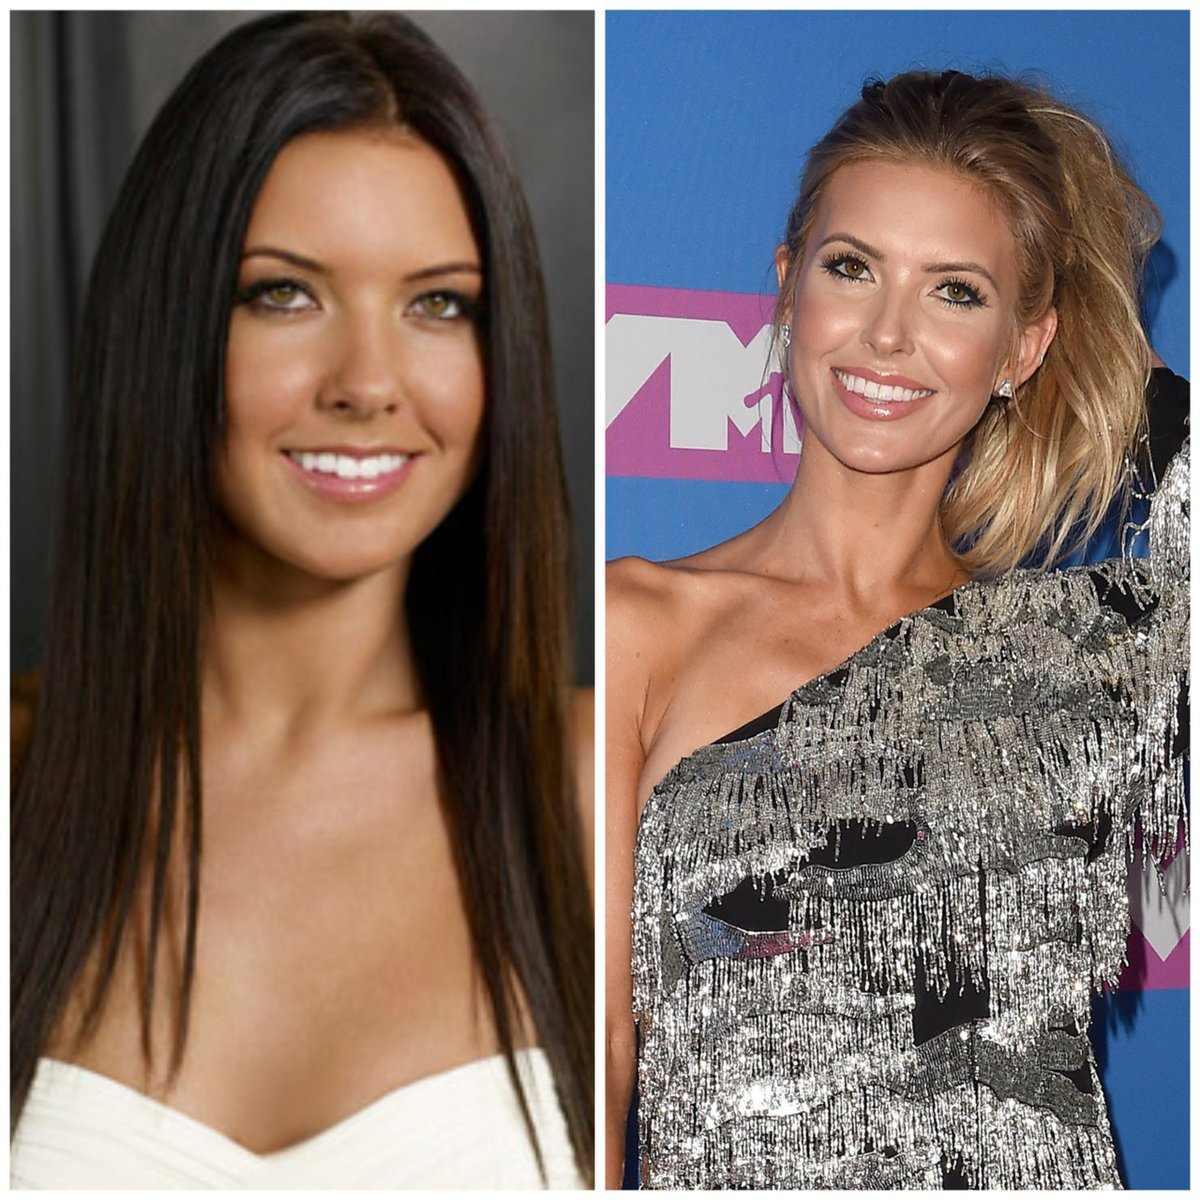 It's like we're all growing up. #10YearsLater #TheHills